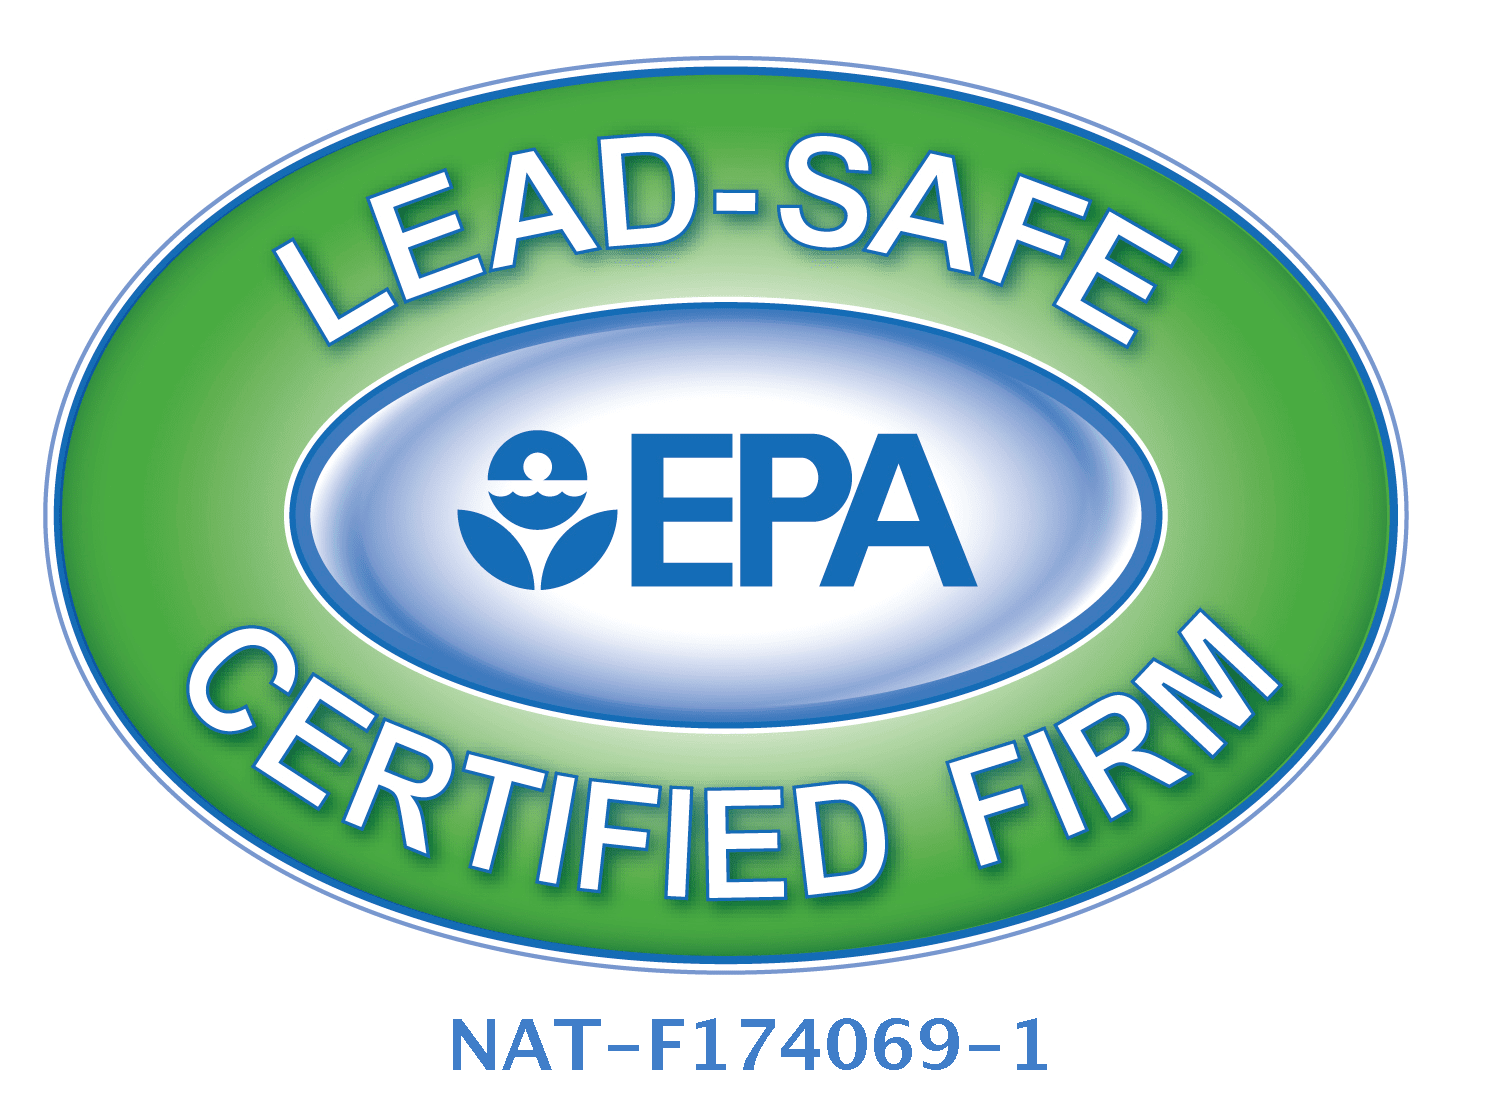 EPA_Leadsafe_Logo_NAT-F174069-1